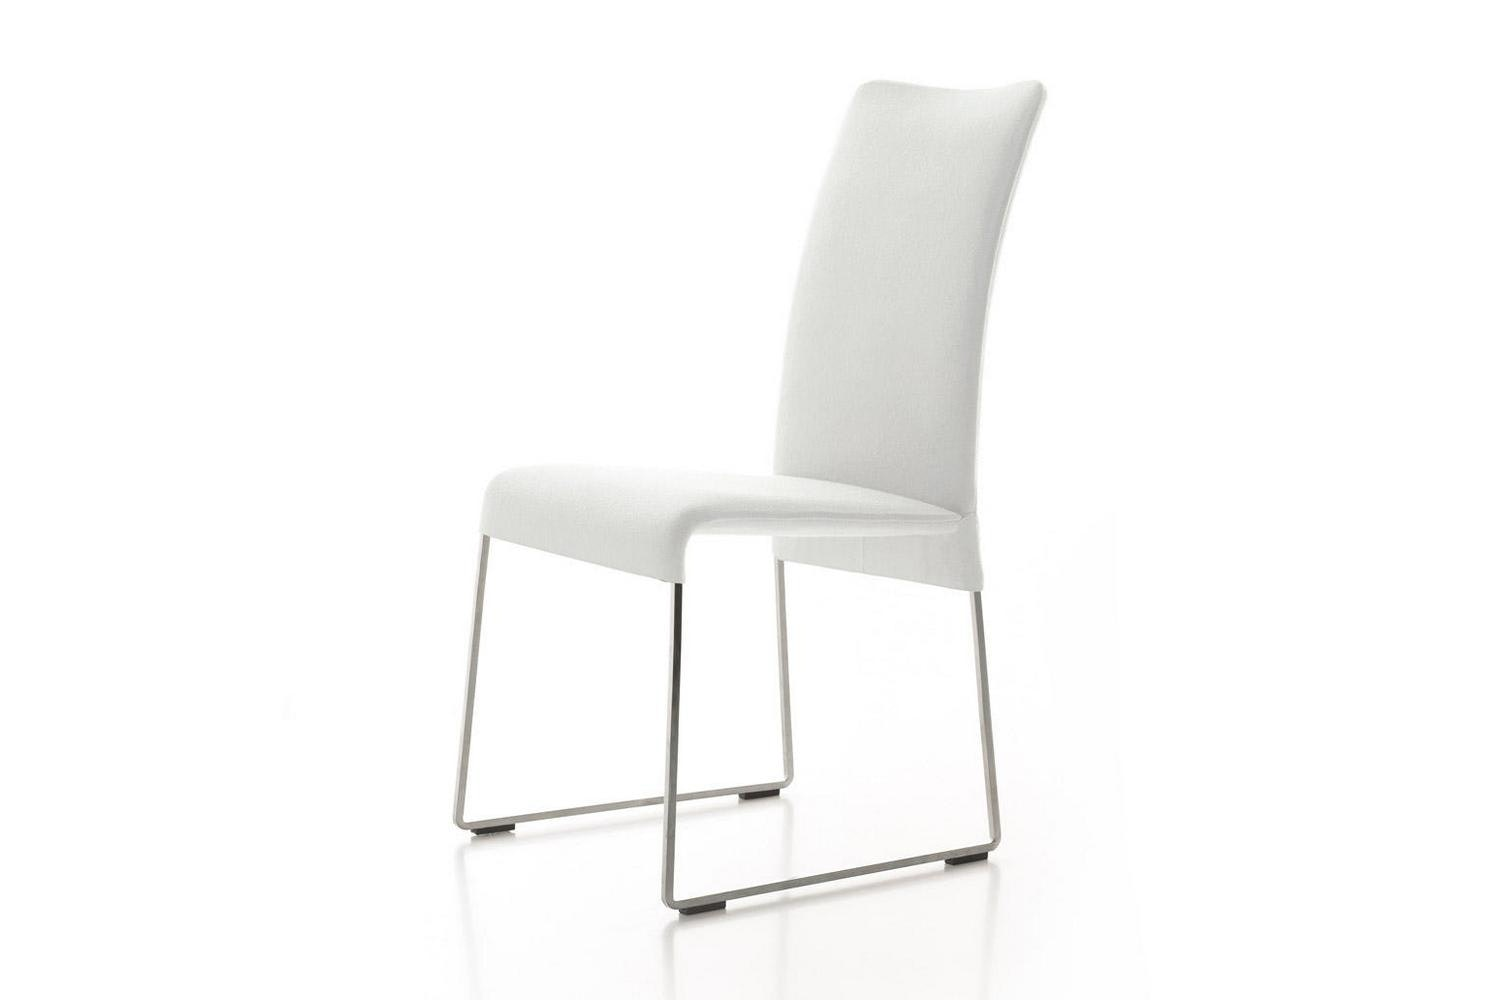 W65 Eraclea Chair by Studio Simon for Cassina